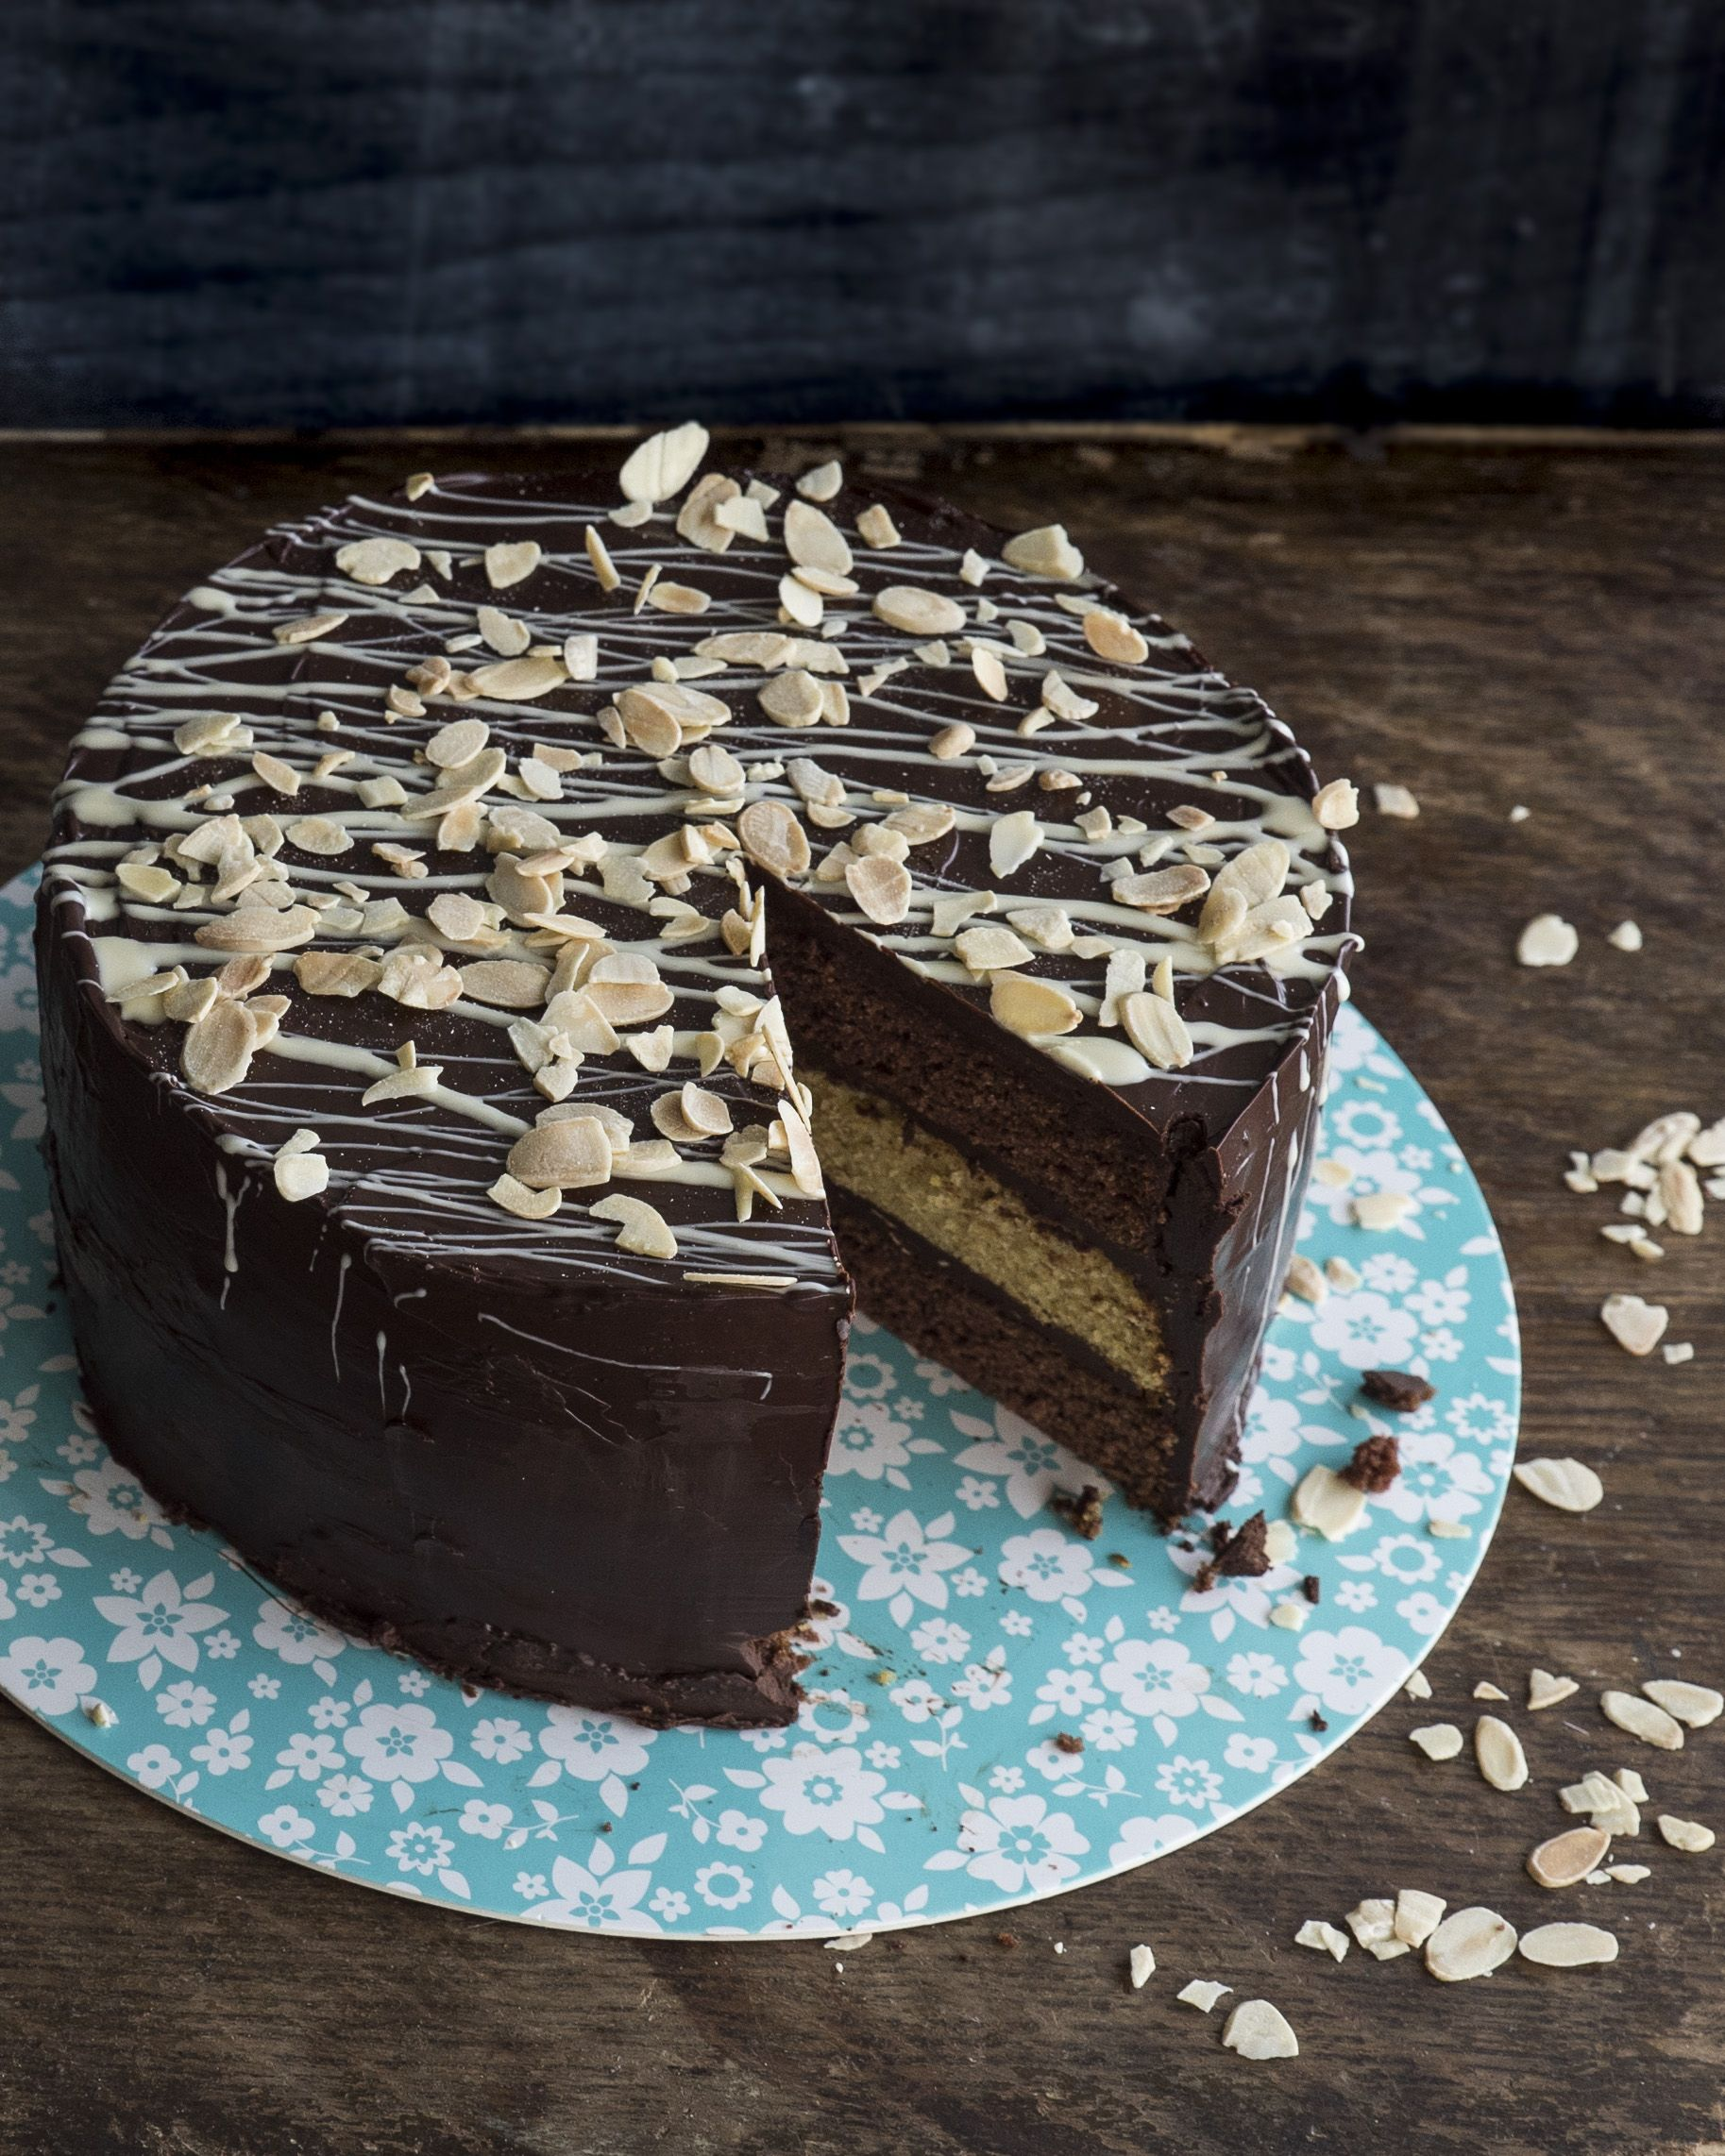 Chocolate cake recipe british bake off